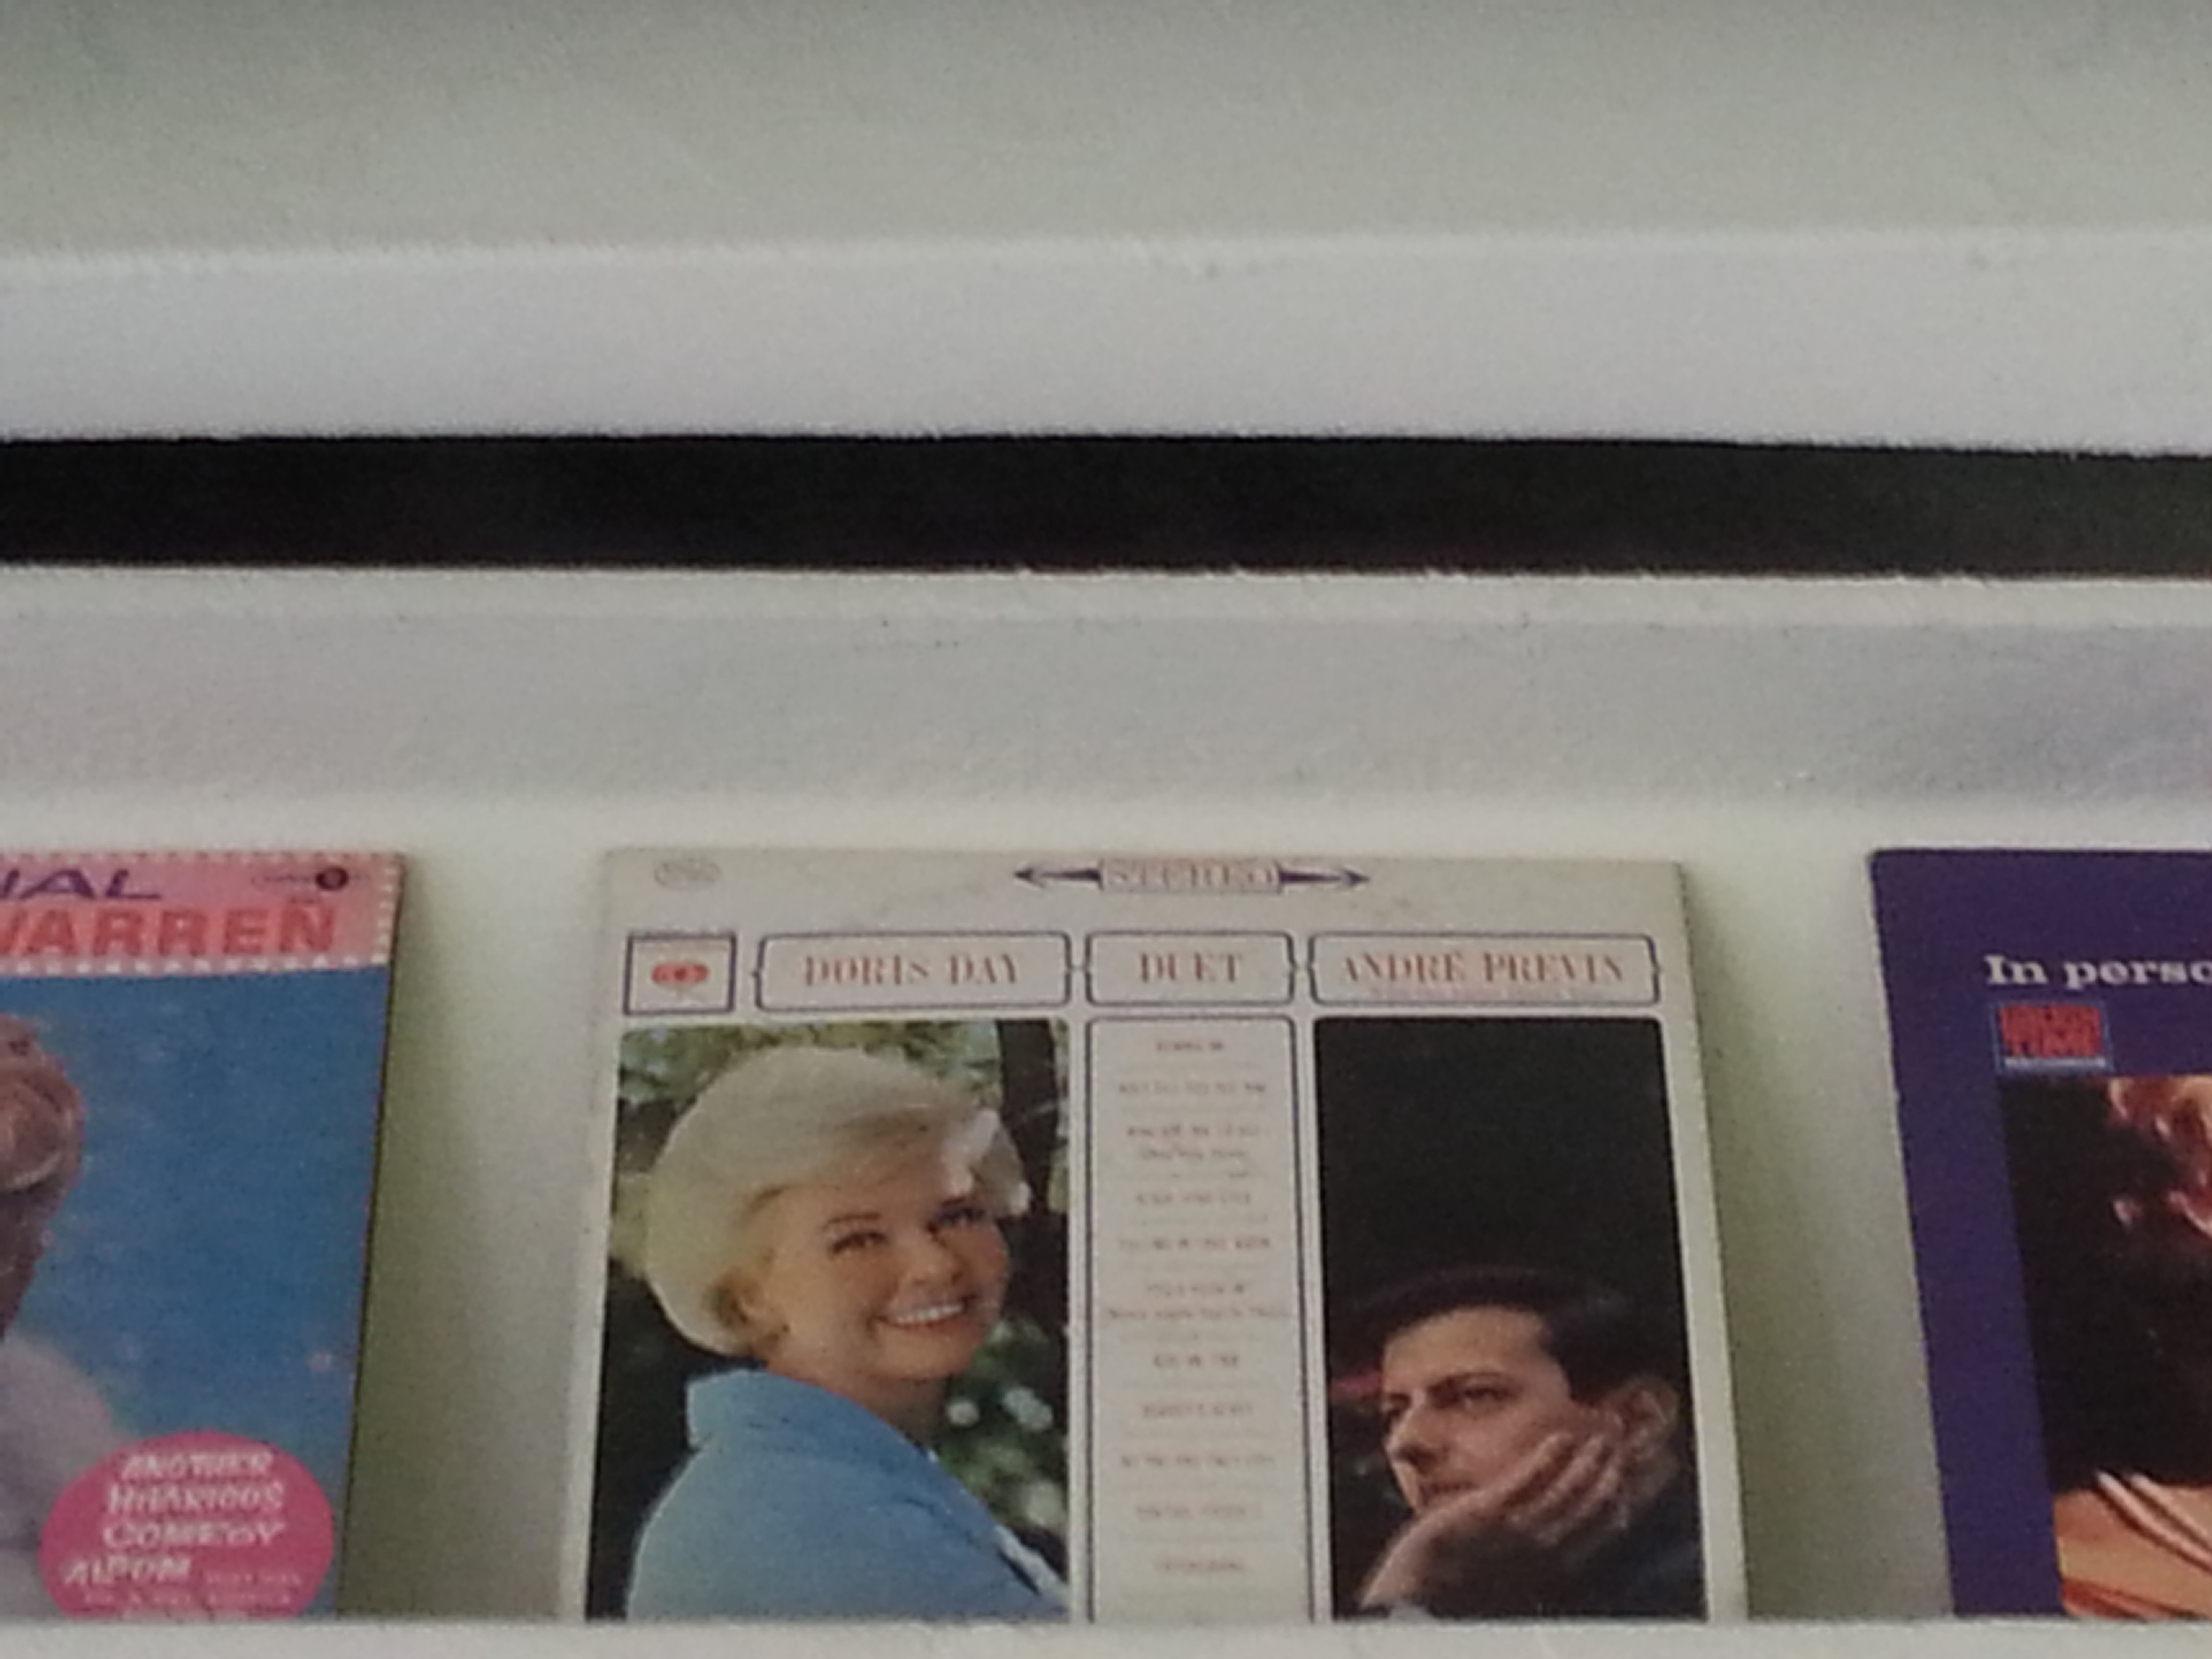 We found a Doris Day record at the American Treasure Tour. How many will you find?